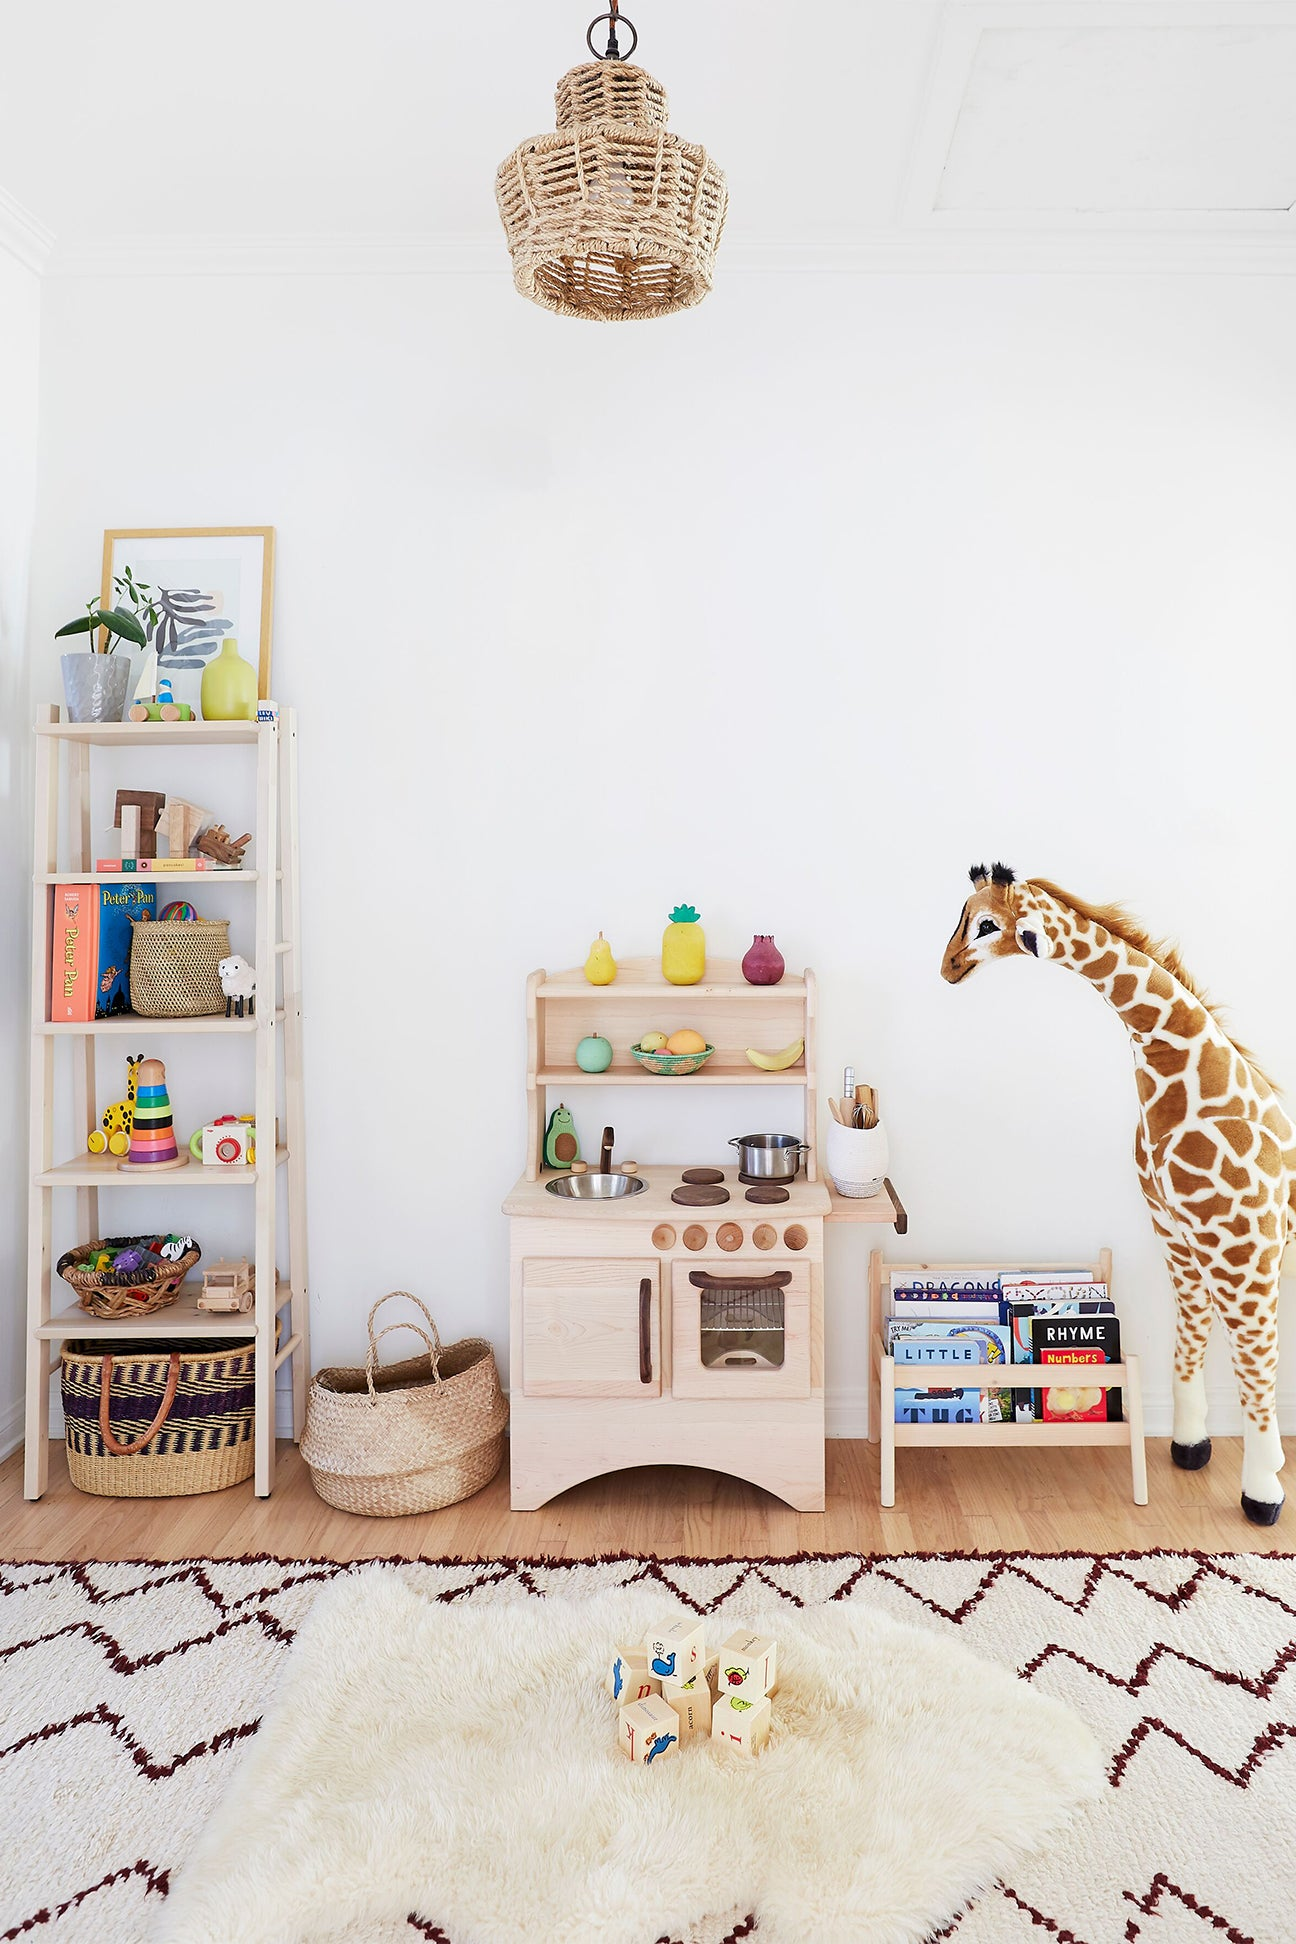 giraffe toy and play kitchen